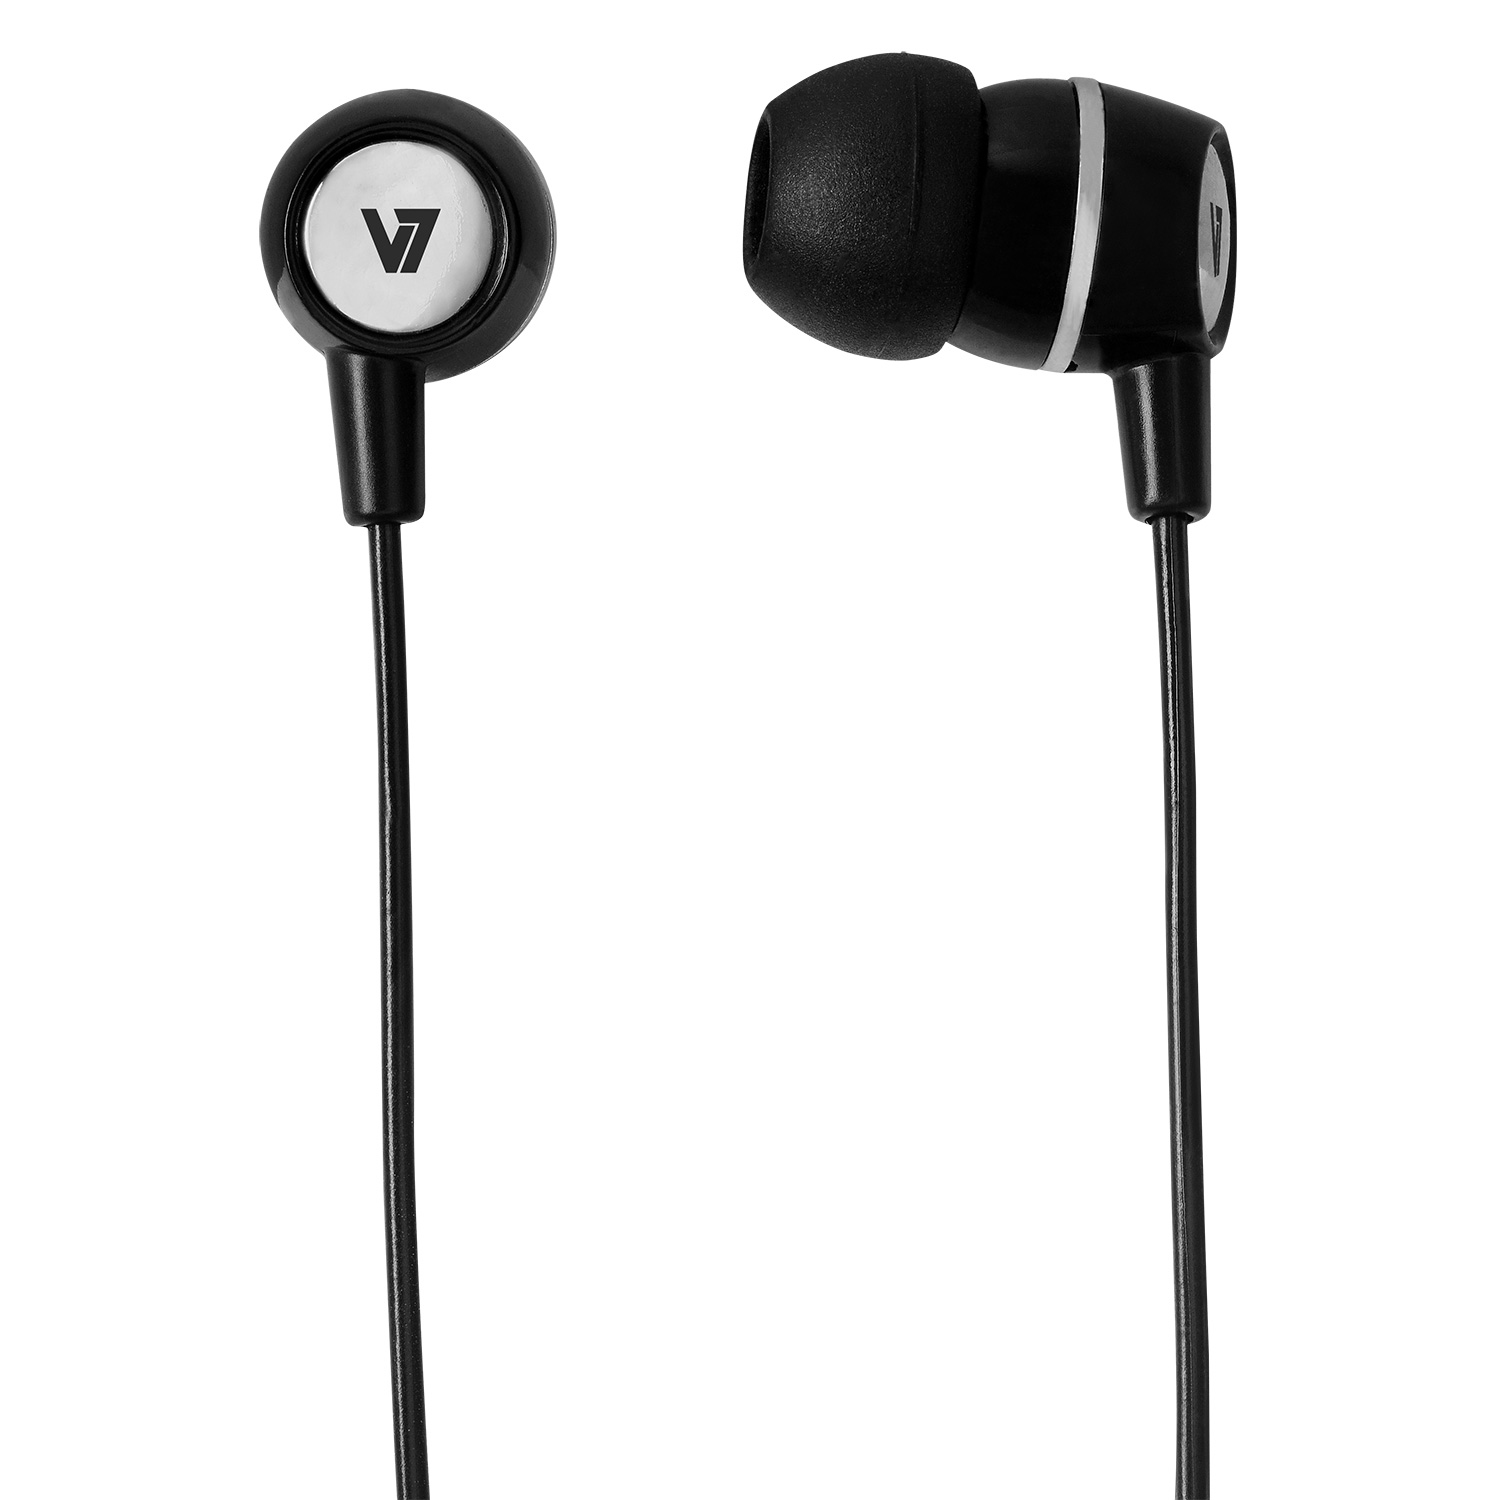 Earbuds With Inline Mic Black 3.5mm Plug For Mobile Devices